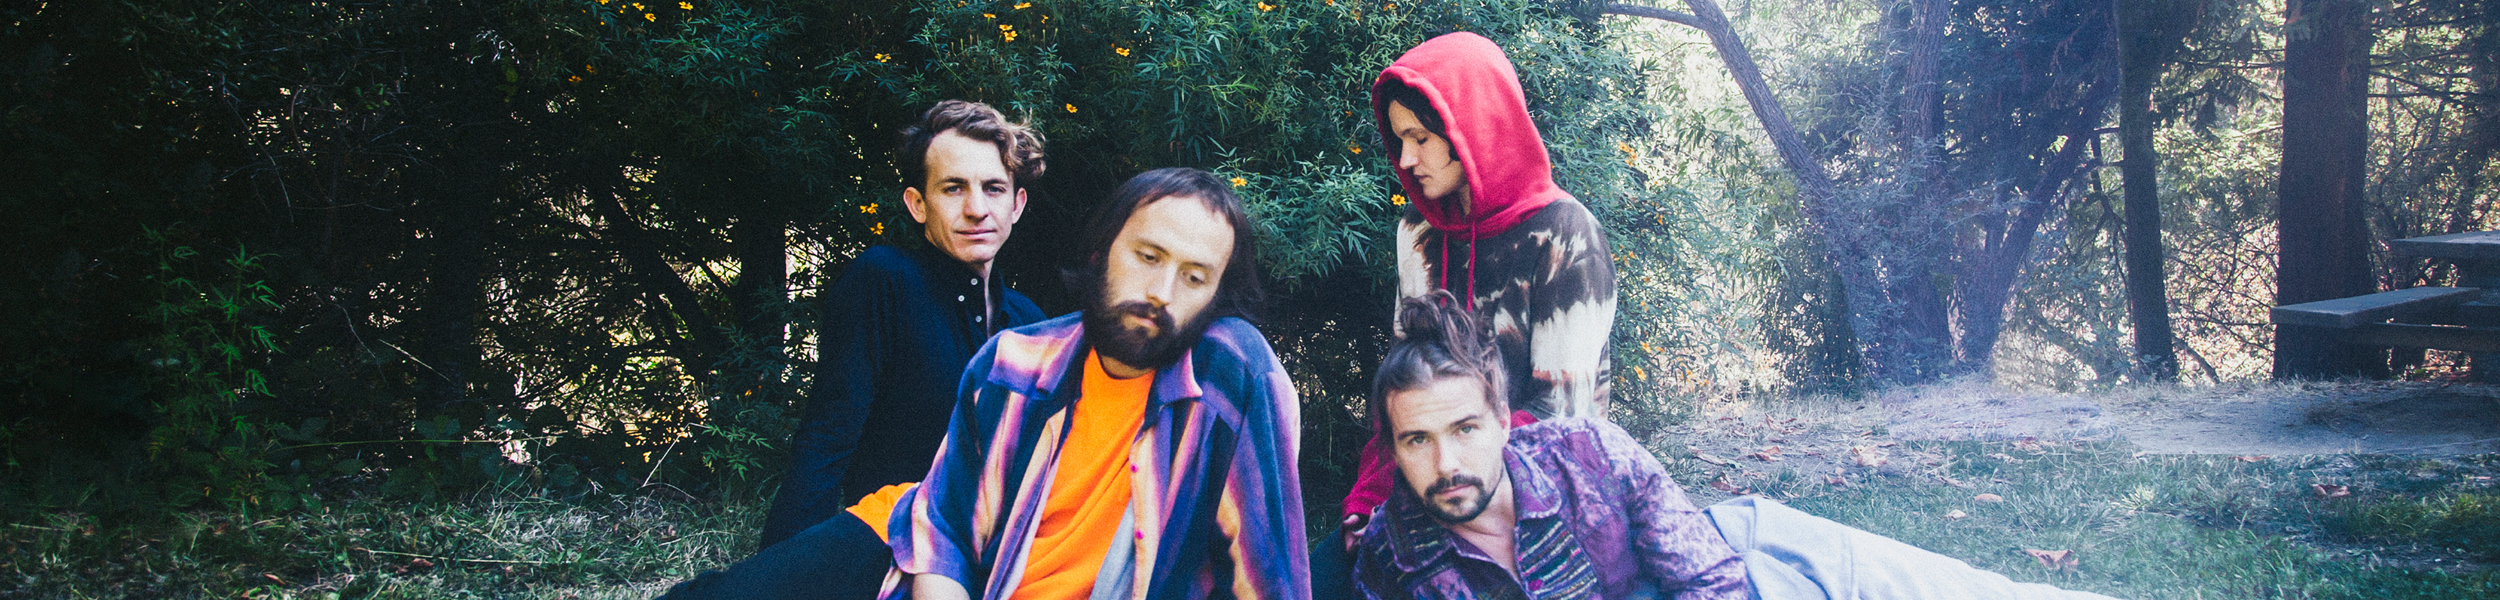 Big Thief - Announce 2020 European Tour